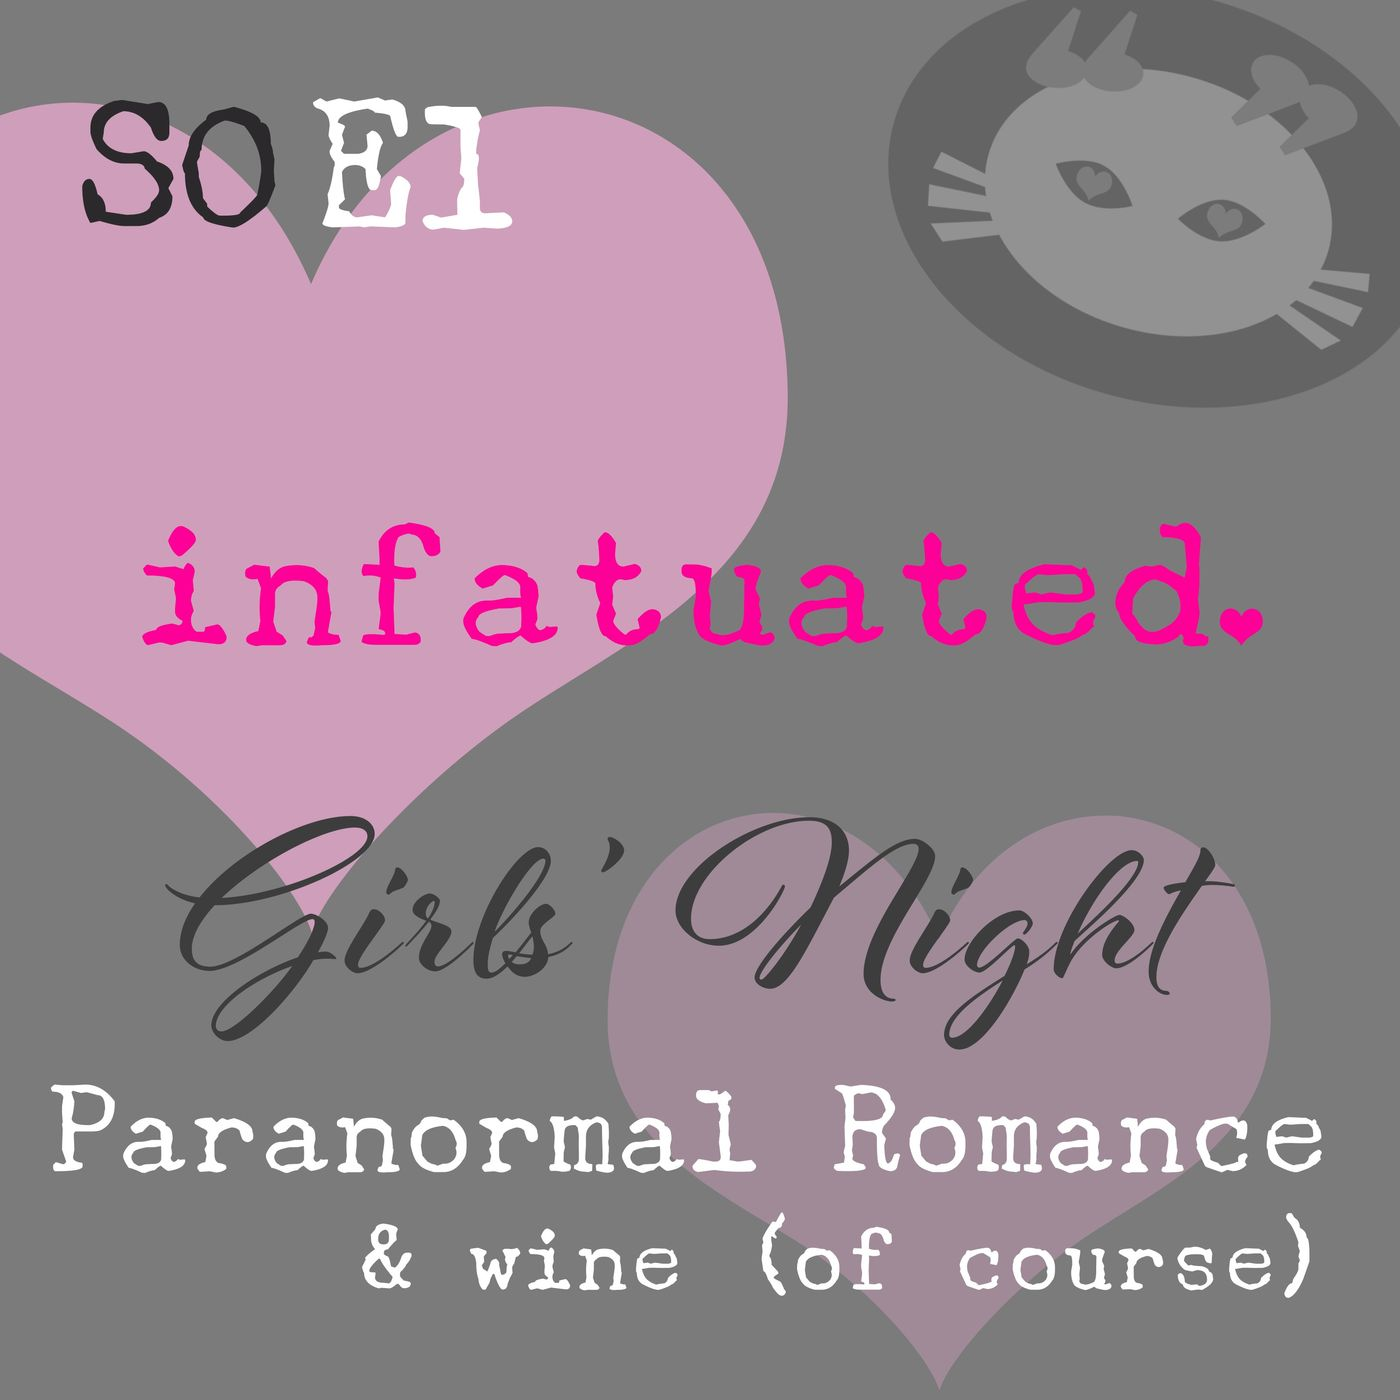 S0E1: Paranormal Romance Girls' Night In, an intimate chat with GraveTells Romance & friends